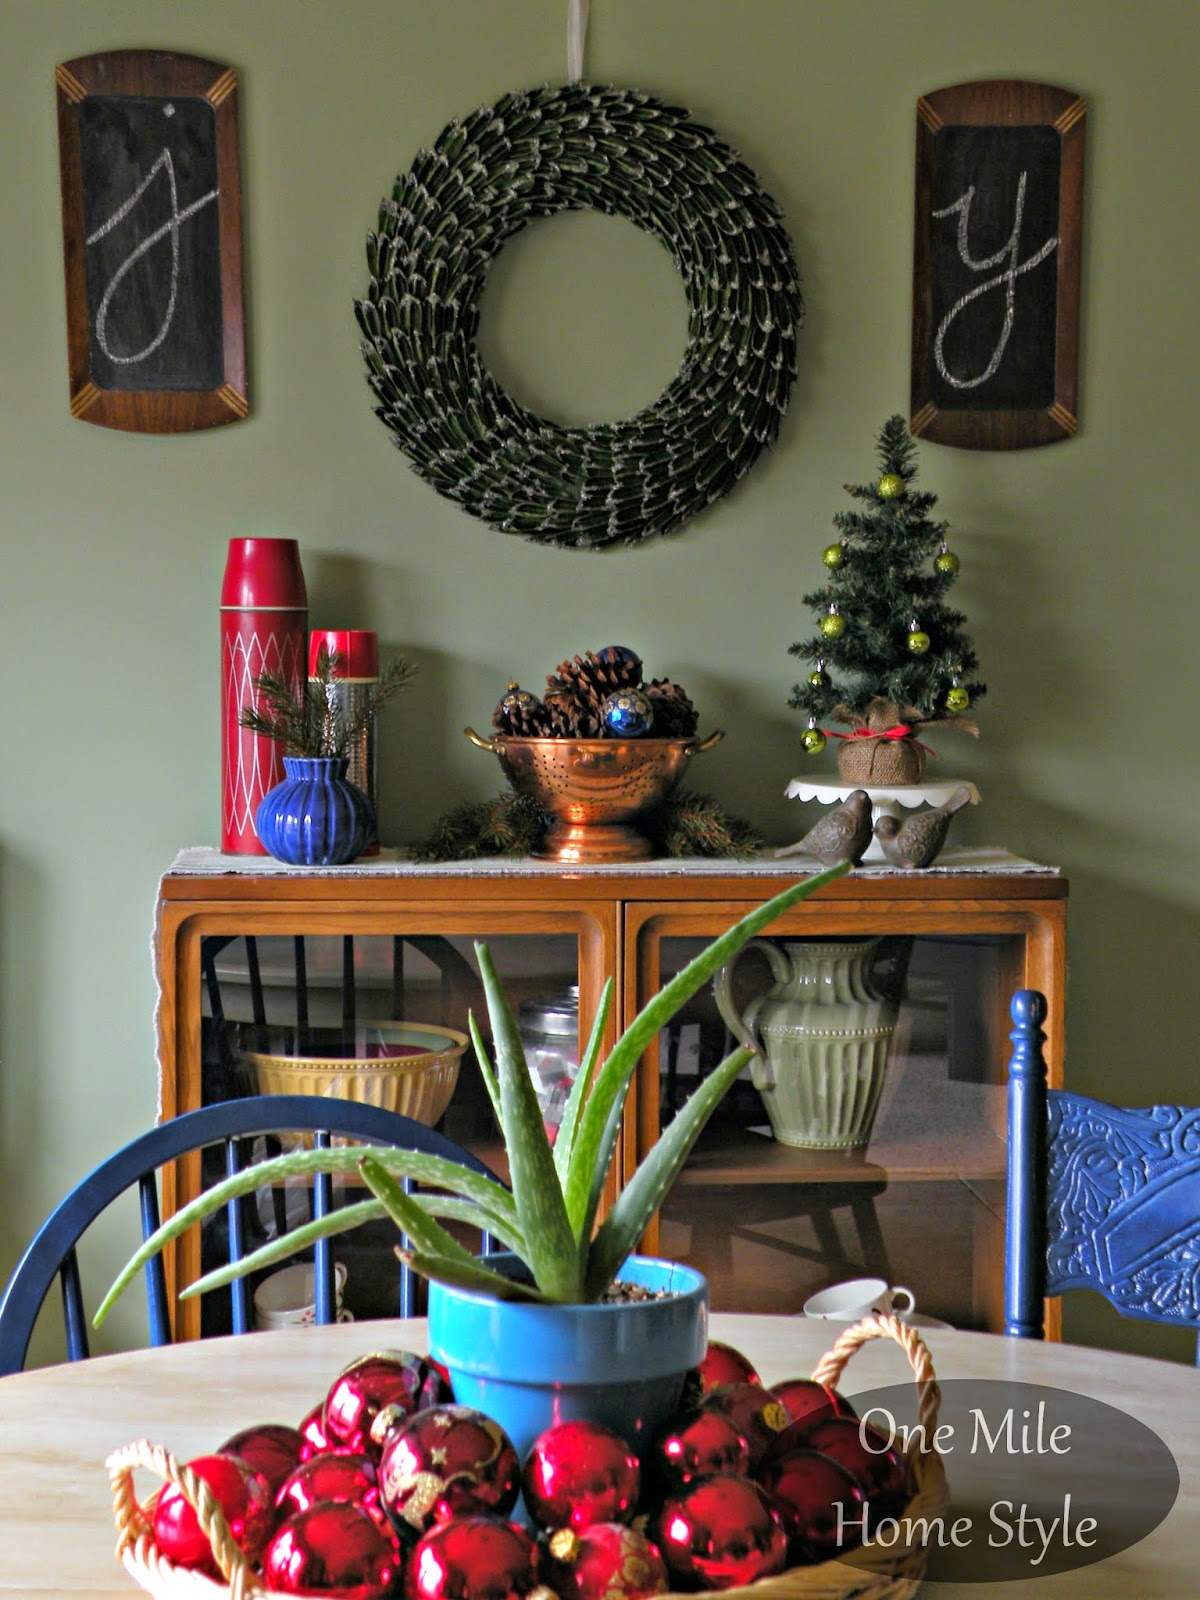 Joy chalkboard and wreath Christmas display